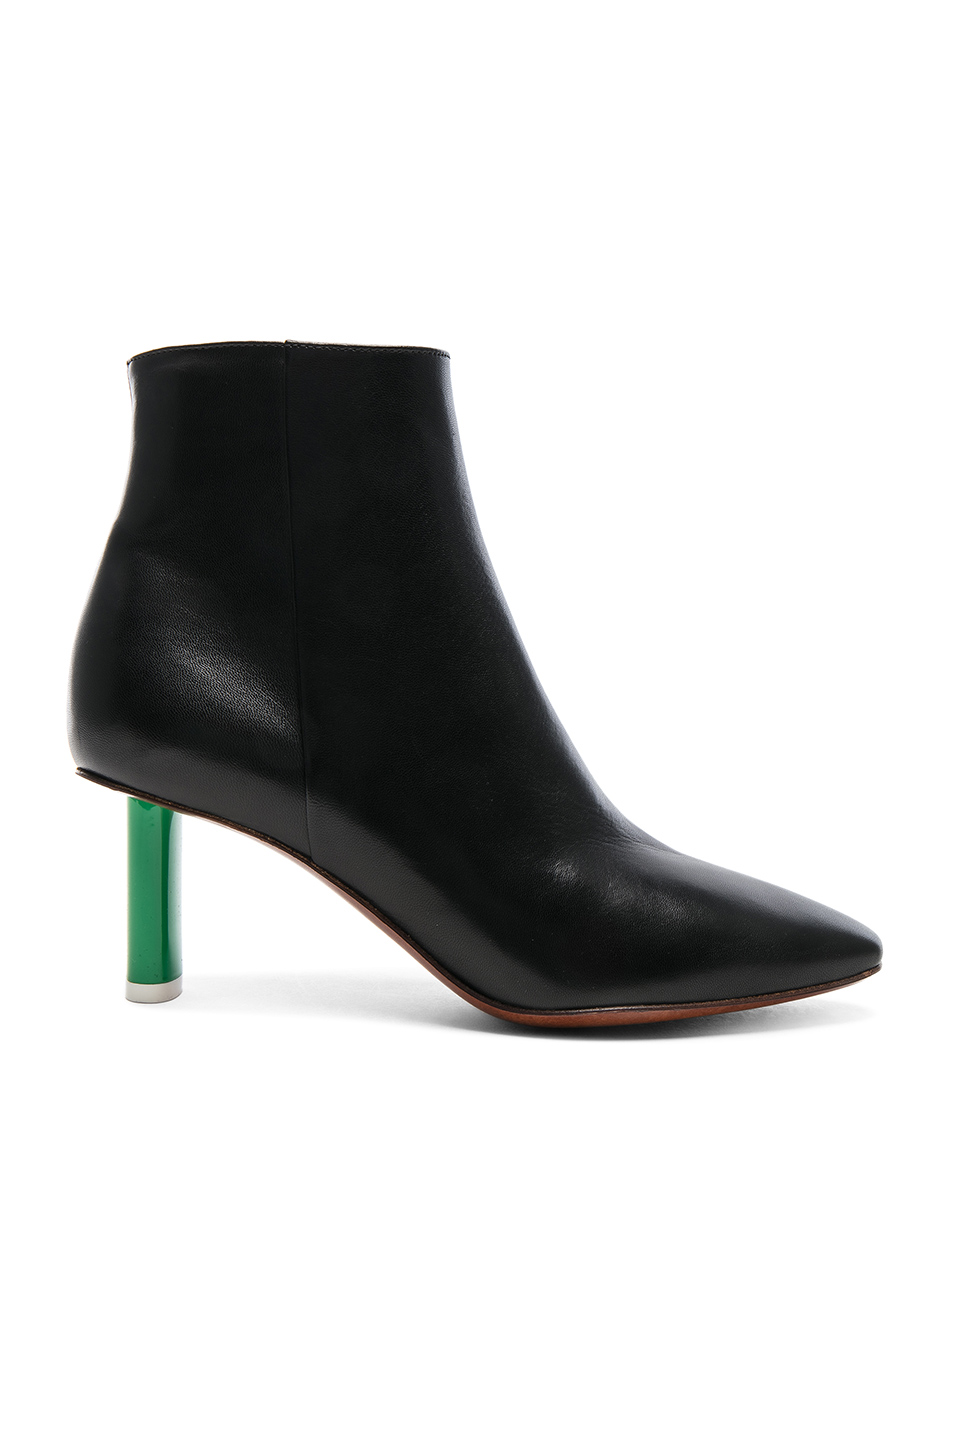 ca01fe66b36 Buy Original VETEMENTS Lighter Heel Leather Ankle Boots at Indonesia ...